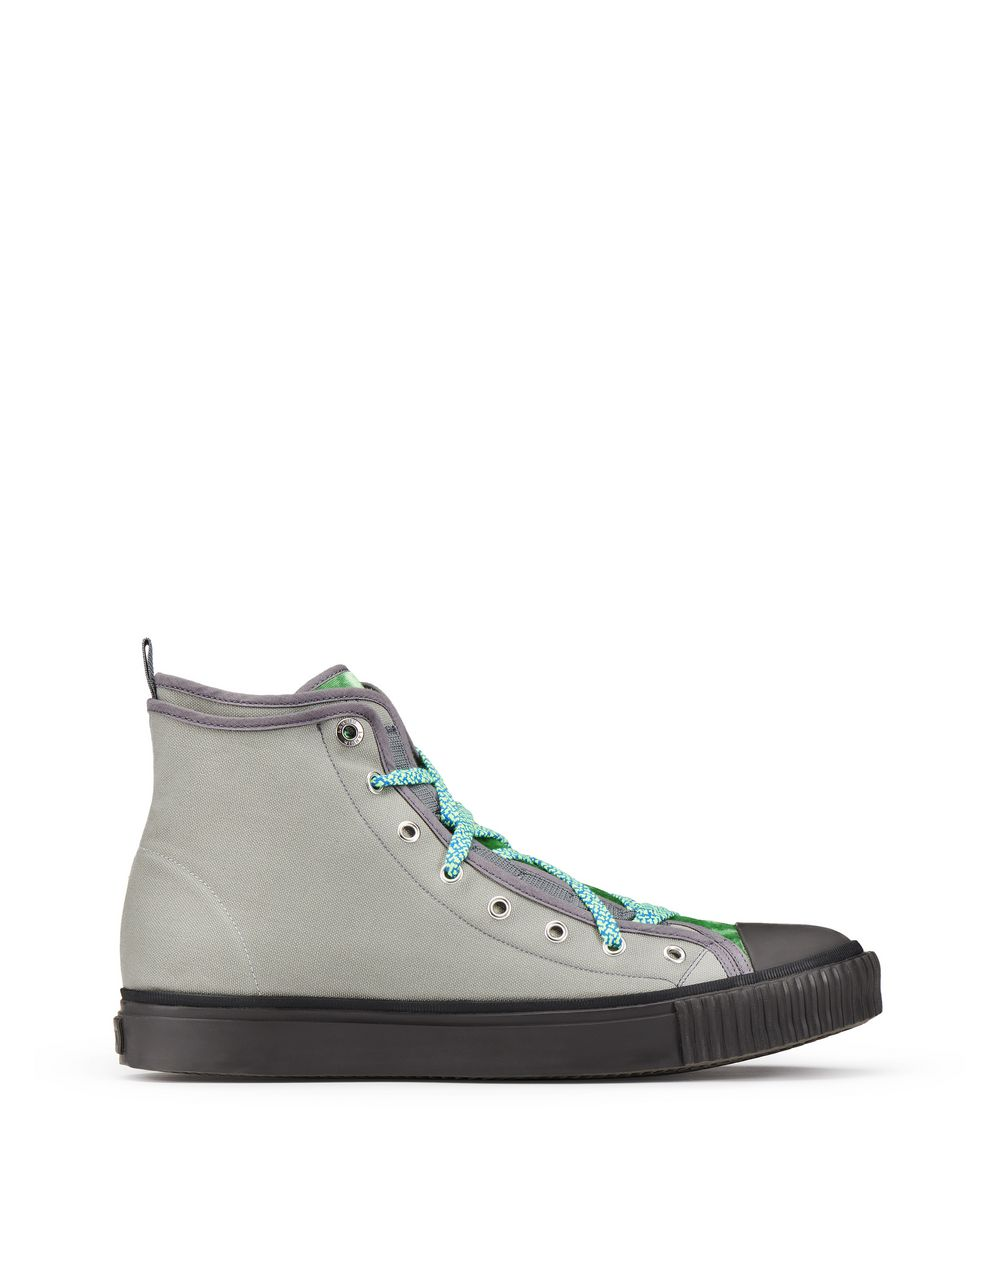 CANVAS AND VELVET HIGH-TOP SNEAKER - Lanvin